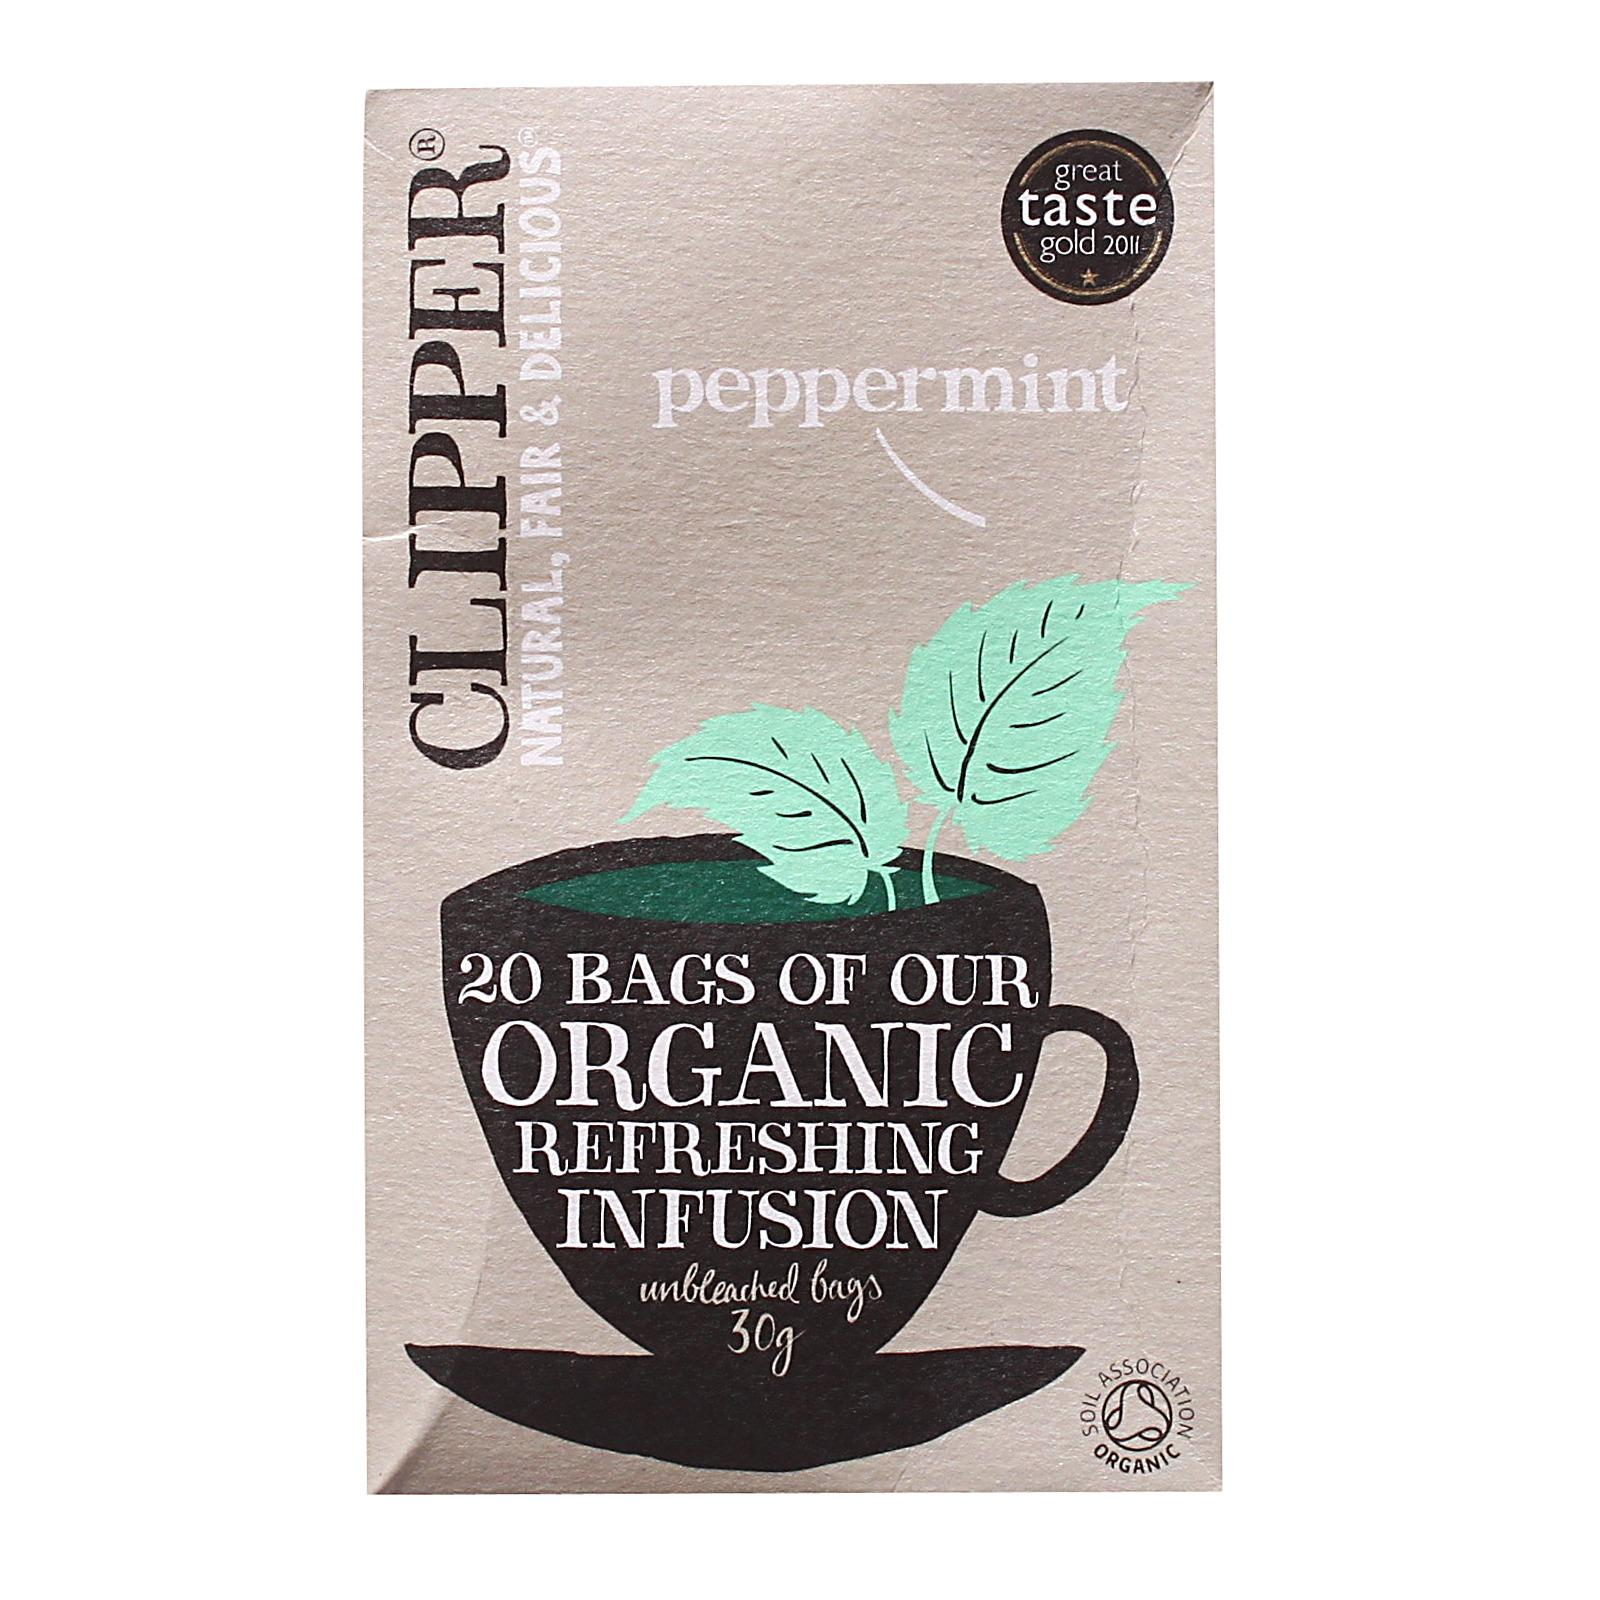 Clipper Organic Infusion Peppermint Tea By Redmart.